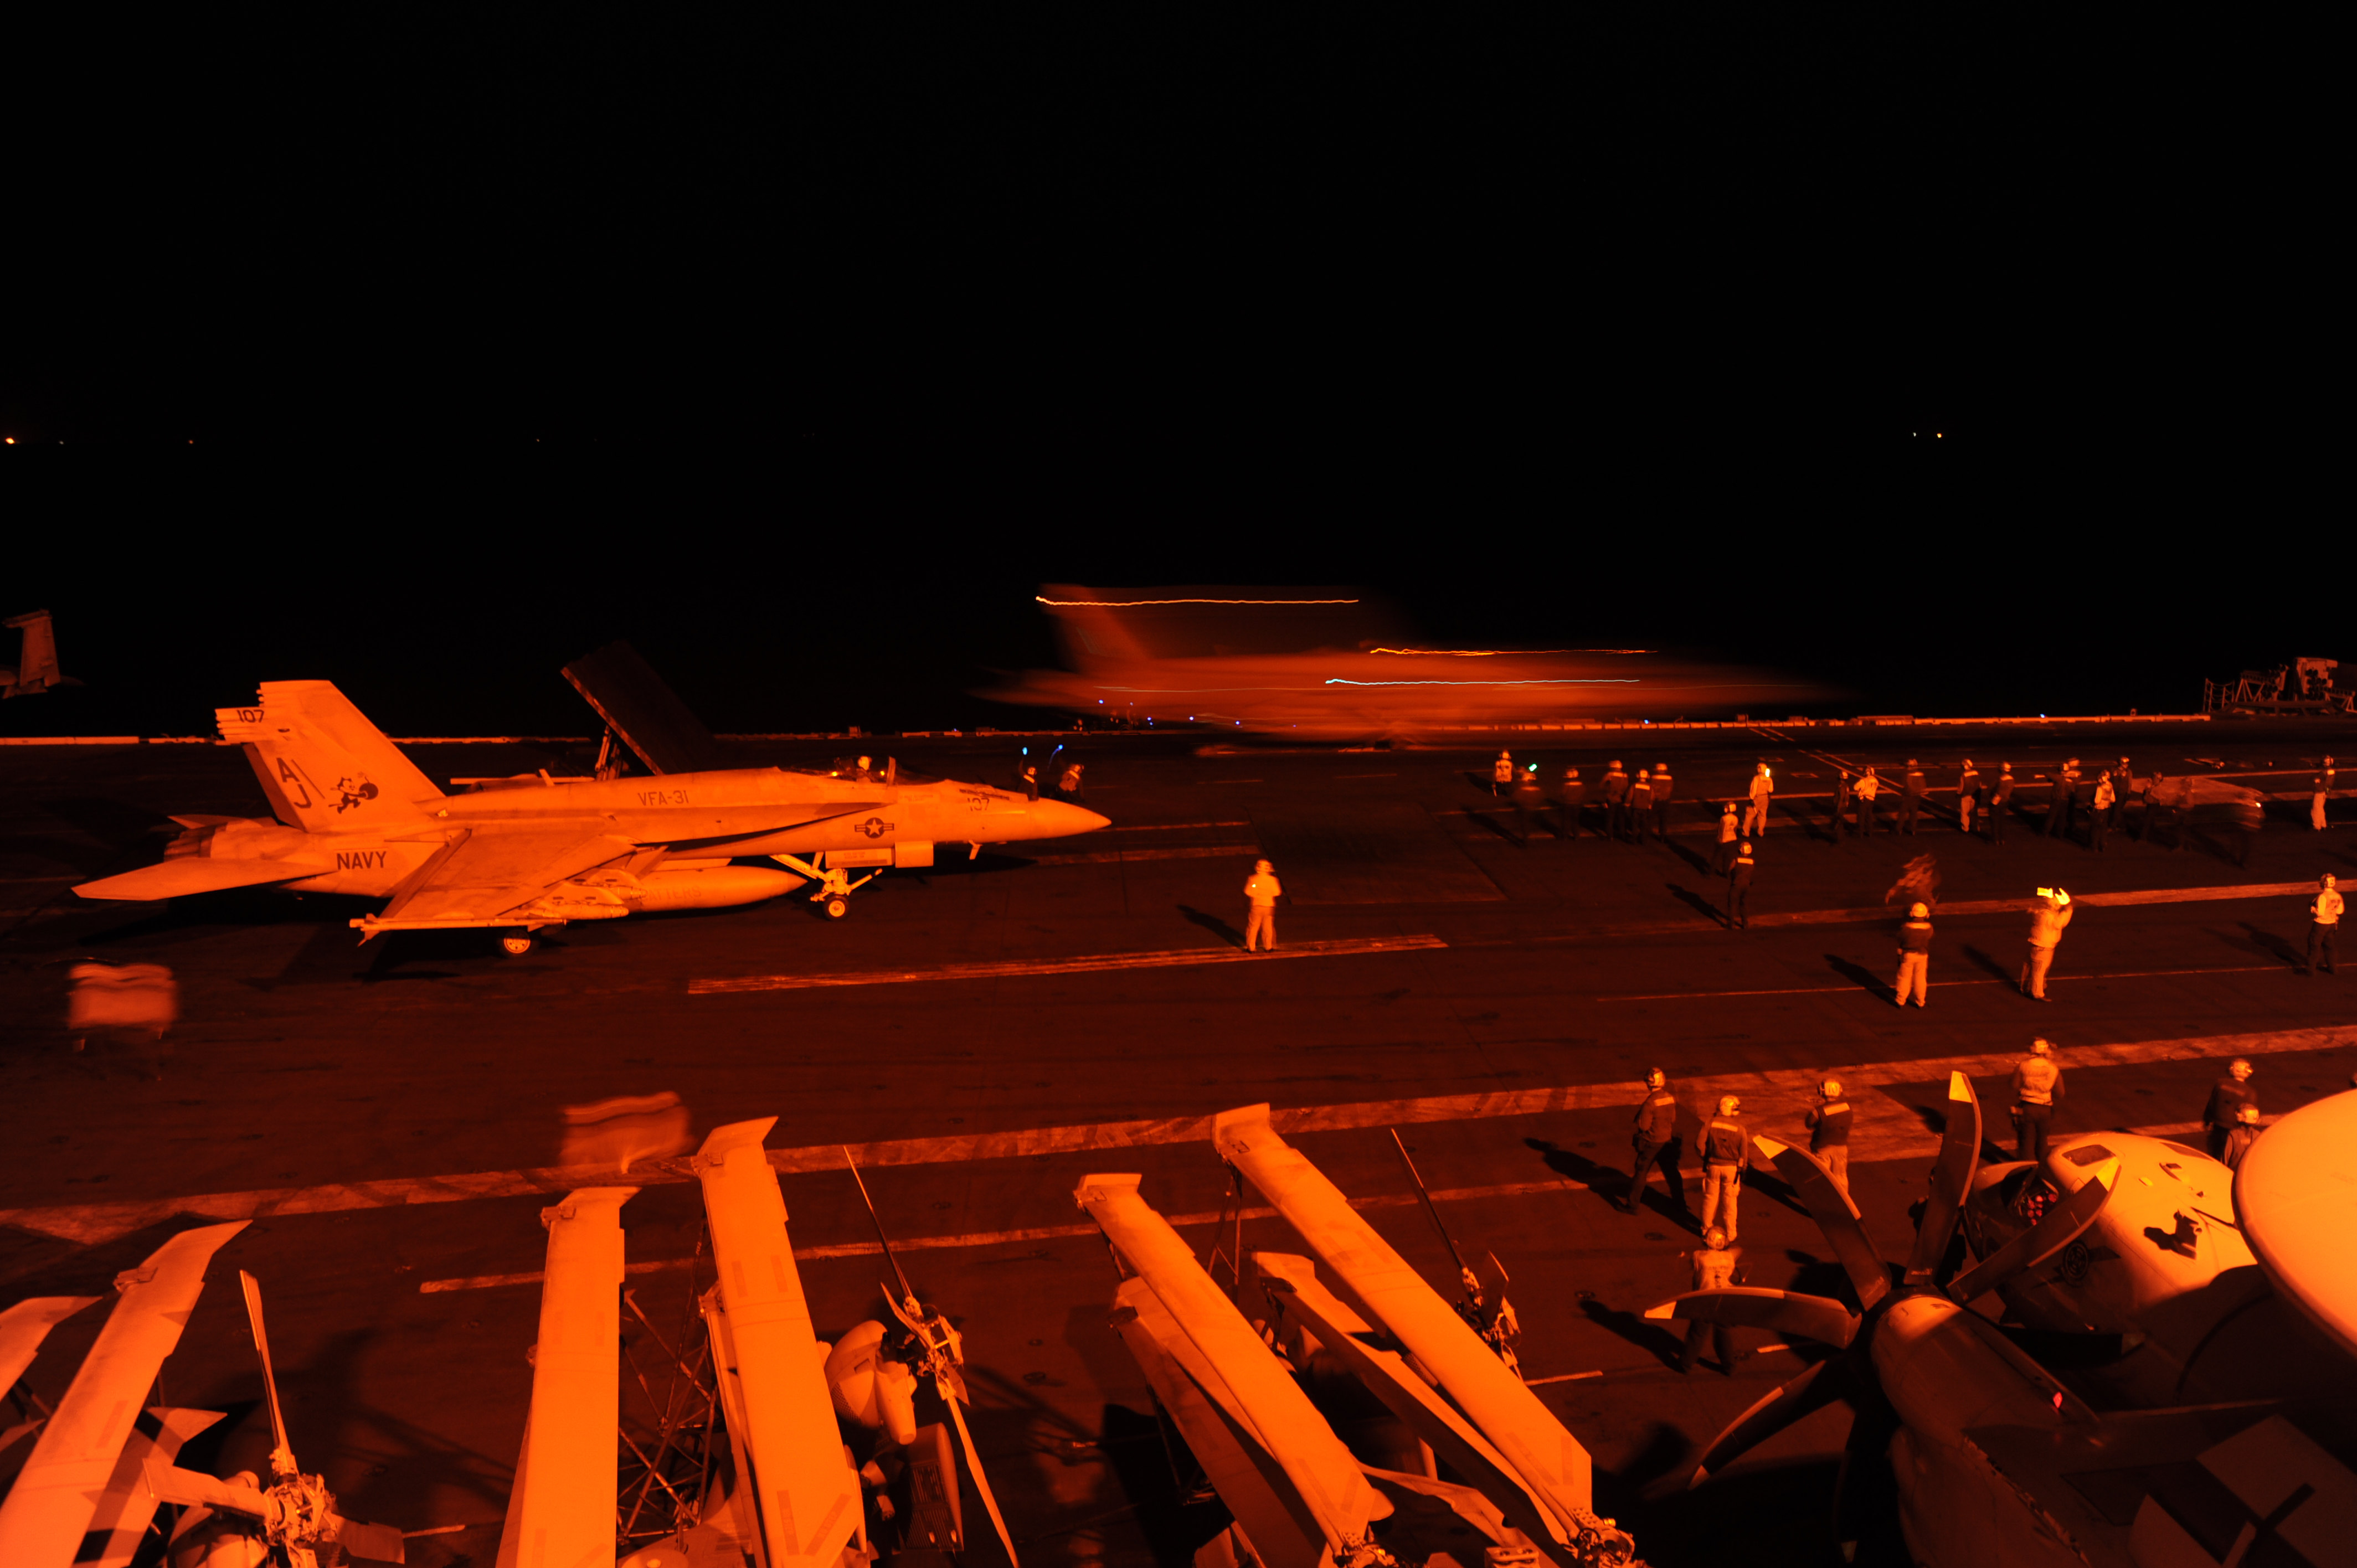 F/A-18E Super Hornet, attached to Strike Fighter Squadron (VFA) 31, and an F/A-18F Super Hornet, attached to Strike Fighter Squadron (VFA) 213, prepare to launch from the flight deck of the aircraft carrier USS George H.W. Bush (CVN 77) to conduct strike missions against ISIS on Sept. 23, 2014. US Navy Photo